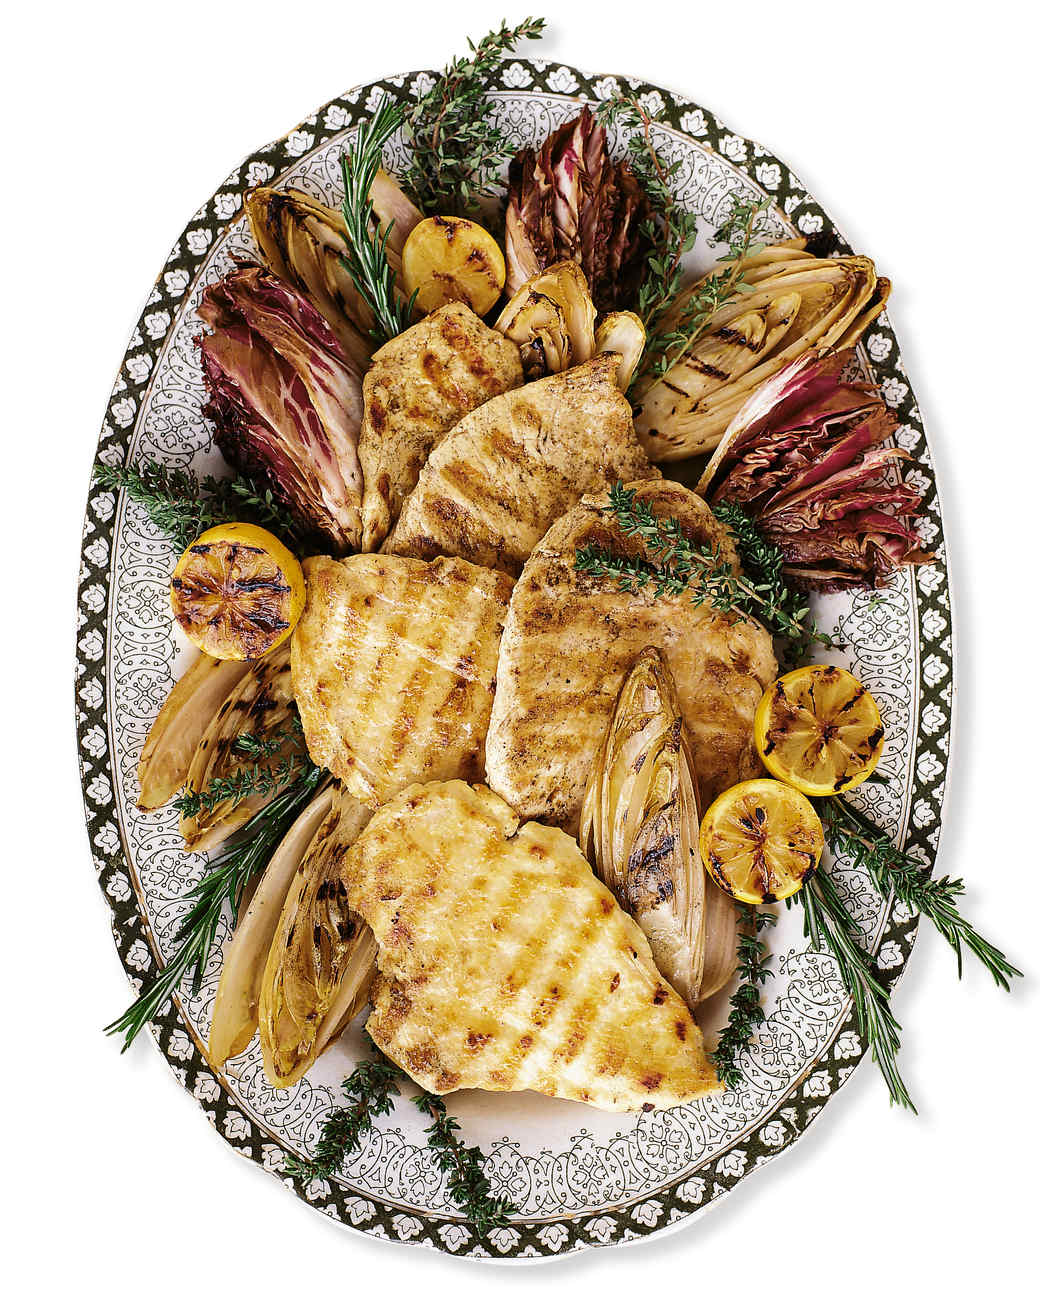 Grilled Chicken Paillards with Endive and Radicchio